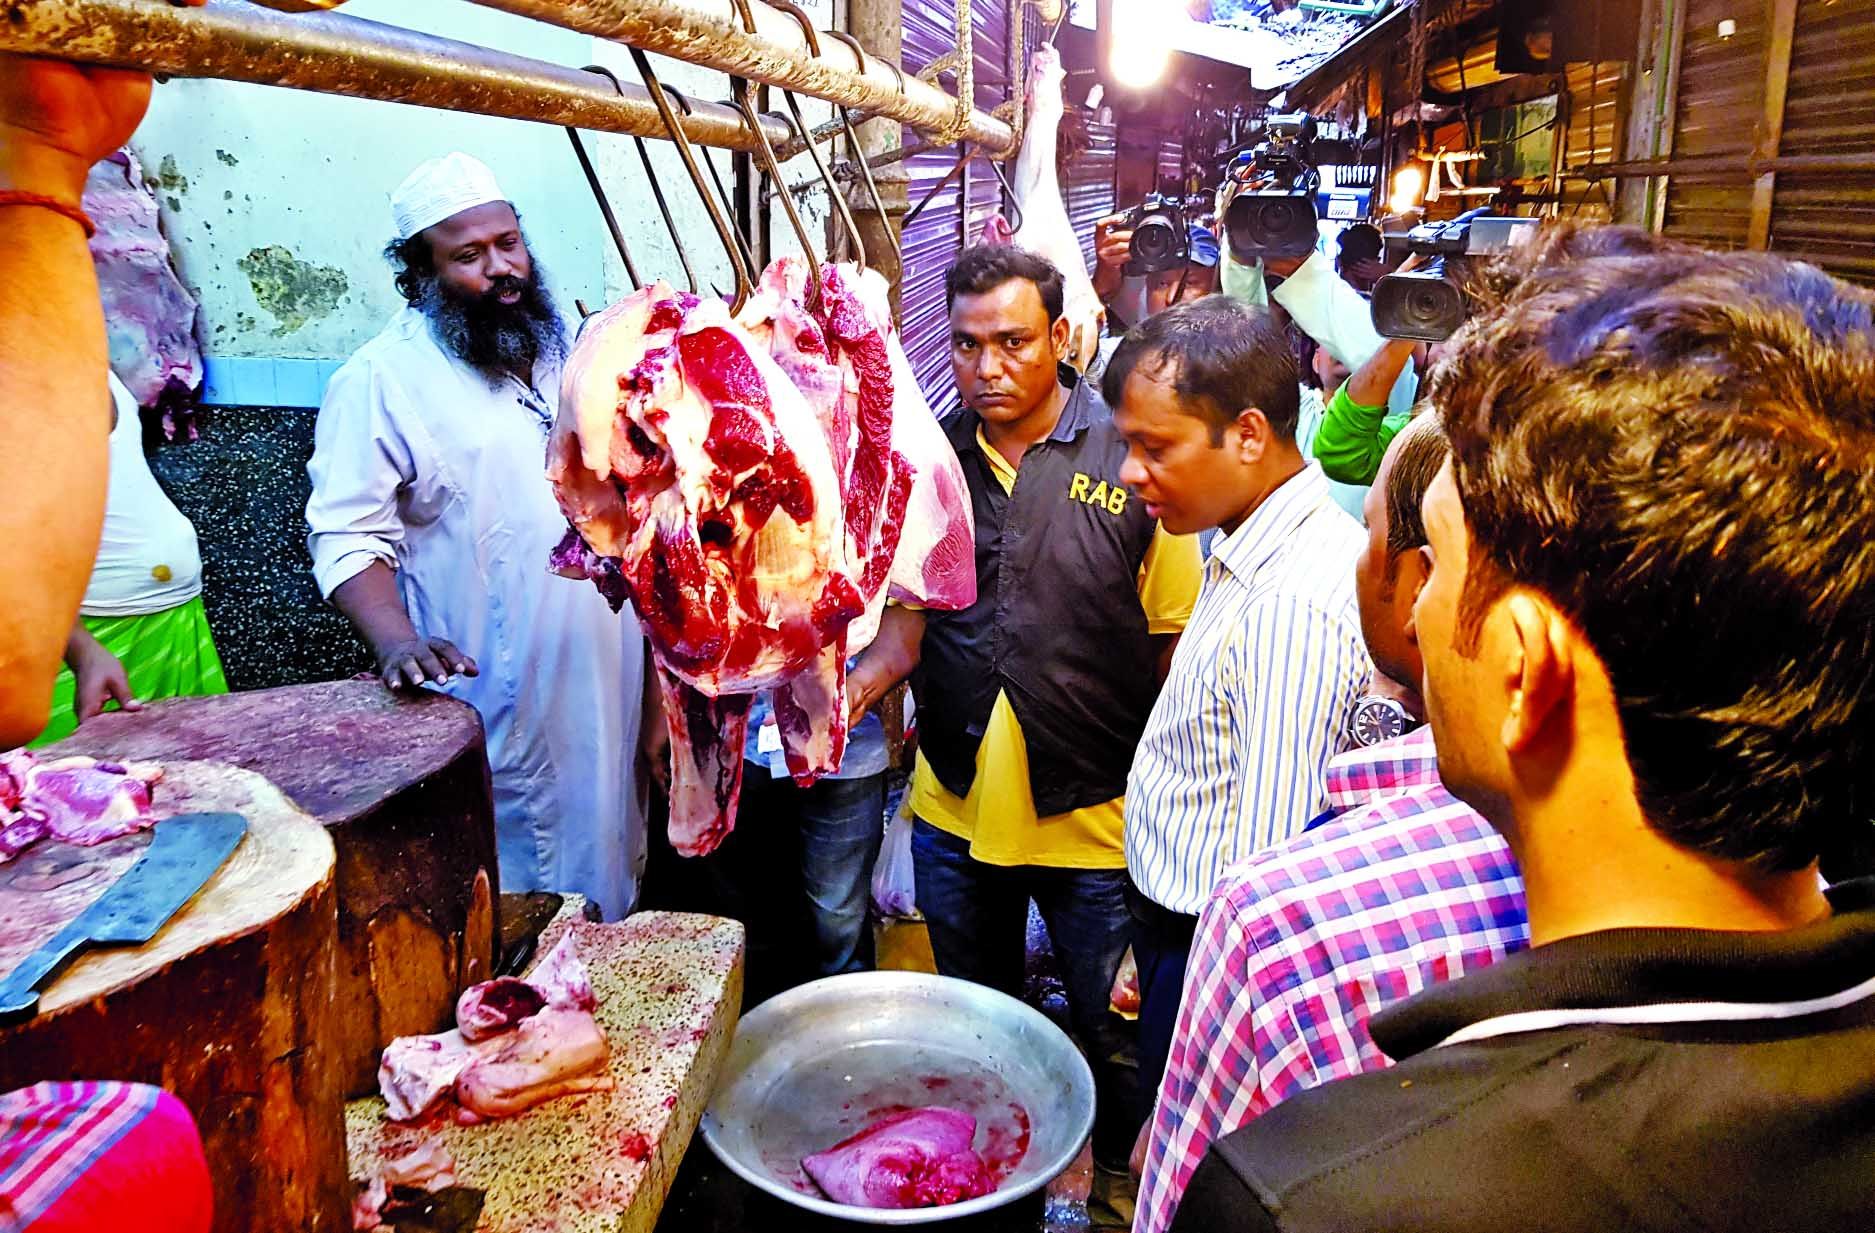 A mobile court led by a magistrate raided Kaptan Bazar meat shops in the city fined Taka four lakhs for selling rotten beef and also at a high price violating govt fixed rate. This photo was taken on Friday.